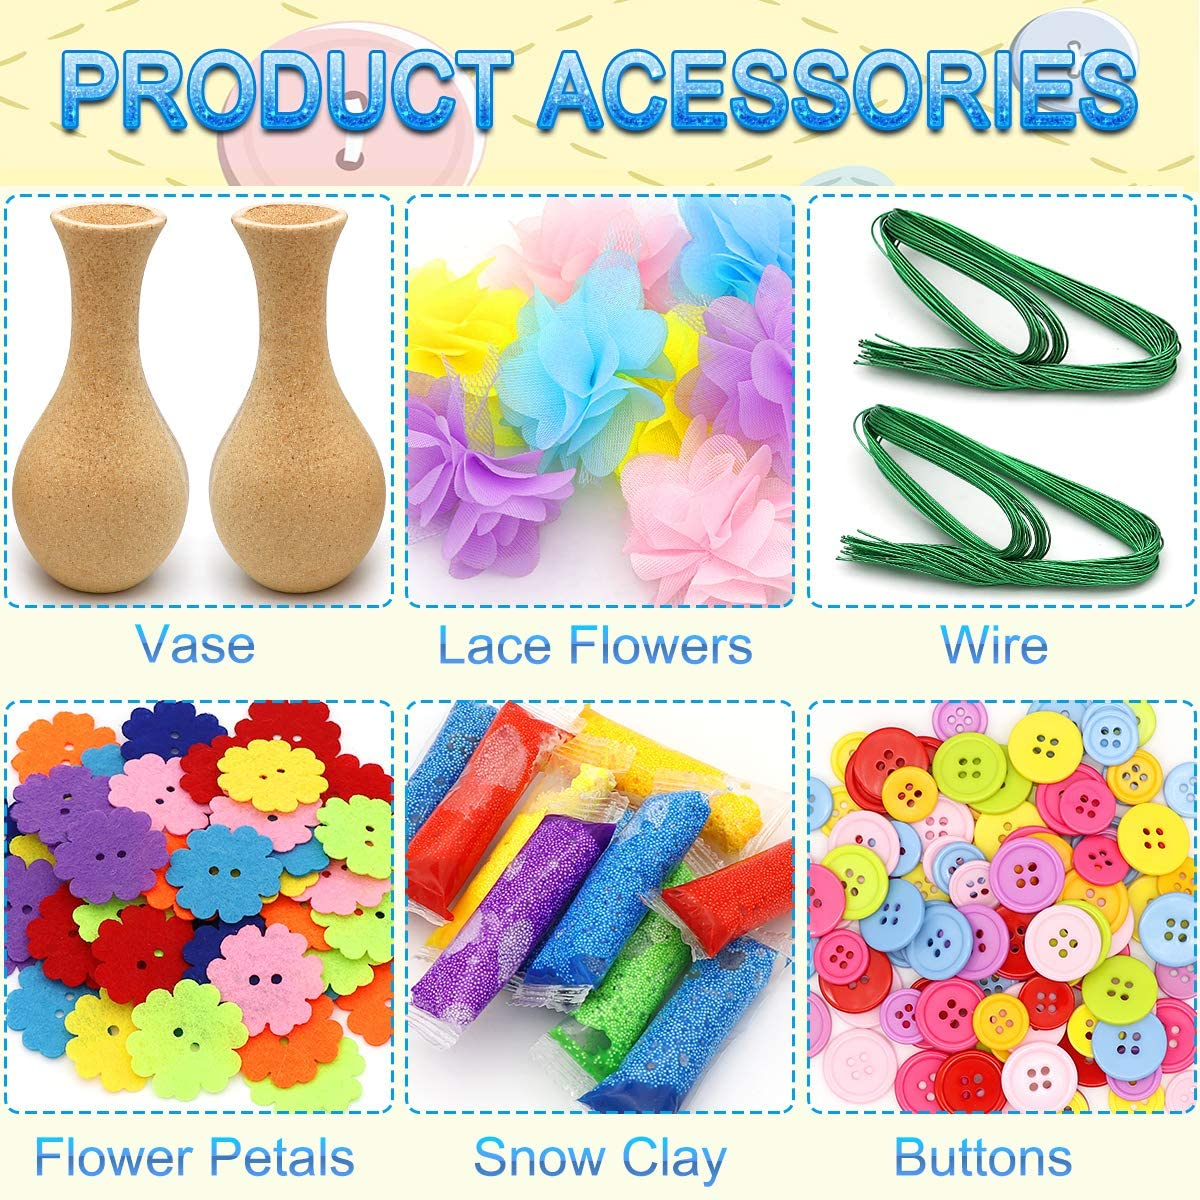 Flower Craft Kit for Kids Angela/&Alex 2 Packs Colorful Flower /& Vase Art Kits DIY Your Own Flower with Button and Lace Flowers Crafts Fun Activity for Boys /& Girls Age 4 5 6 7 8 9 10 11 12 Years Old